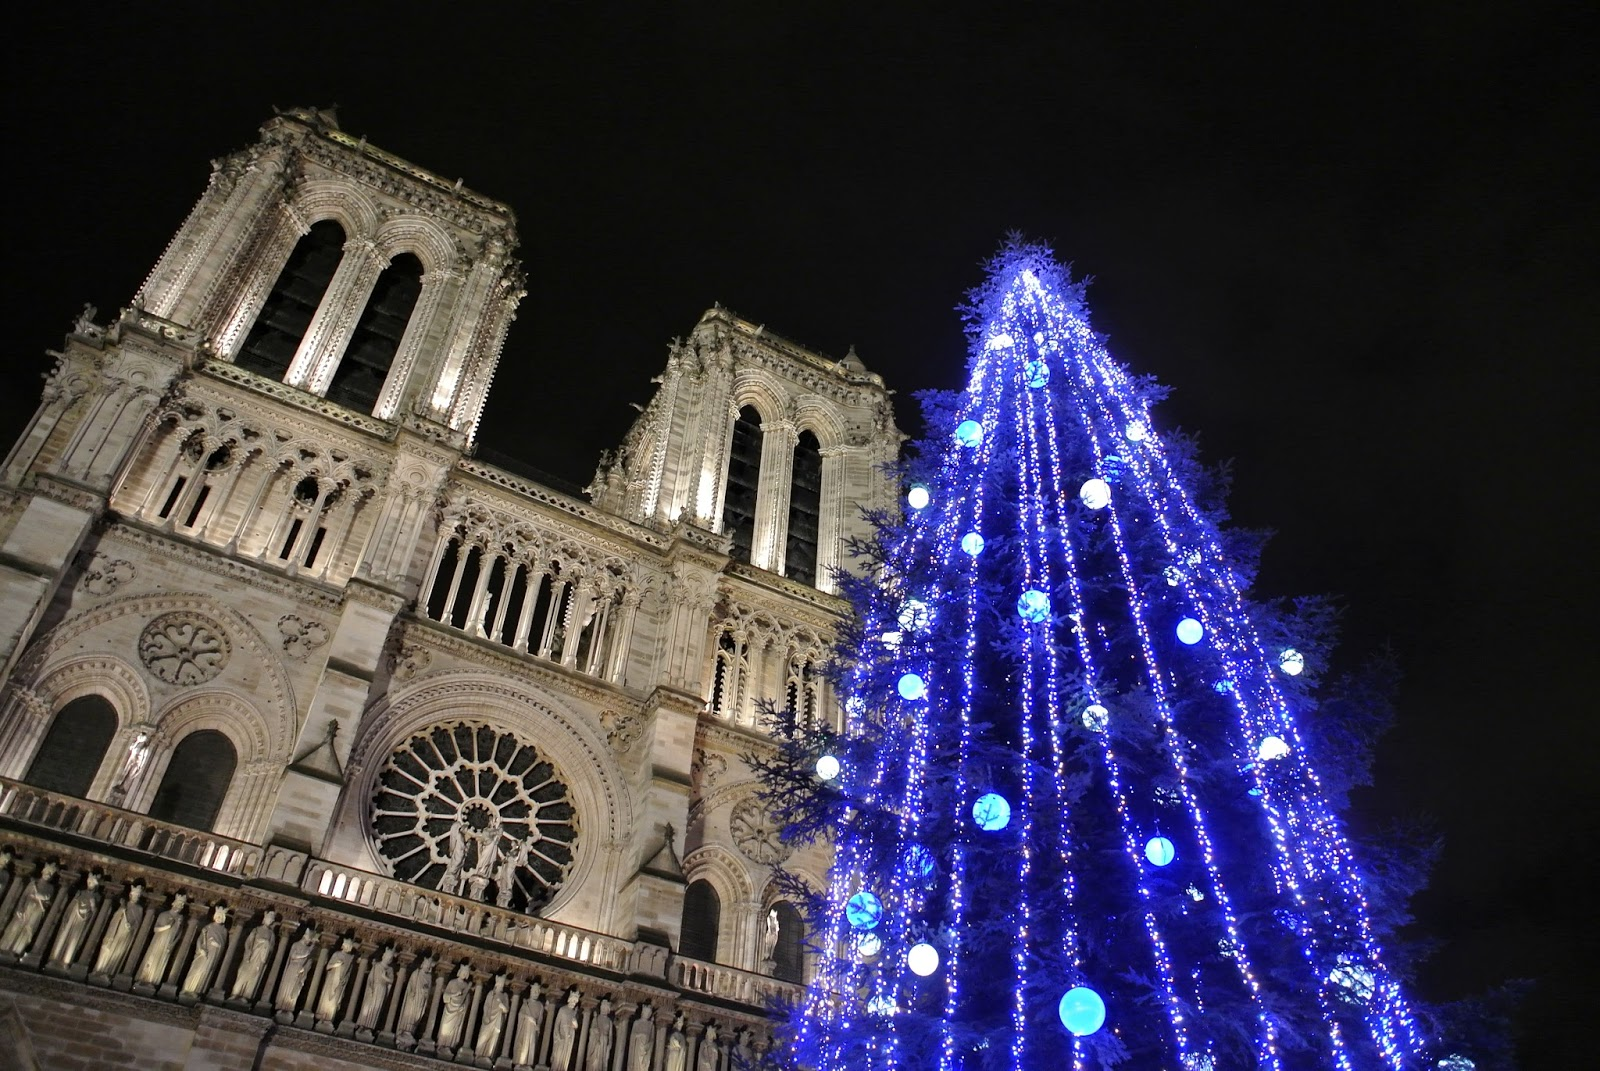 Le blog de gabrielle aznar les illuminations no l paris 2014 - Illumination noel paris ...